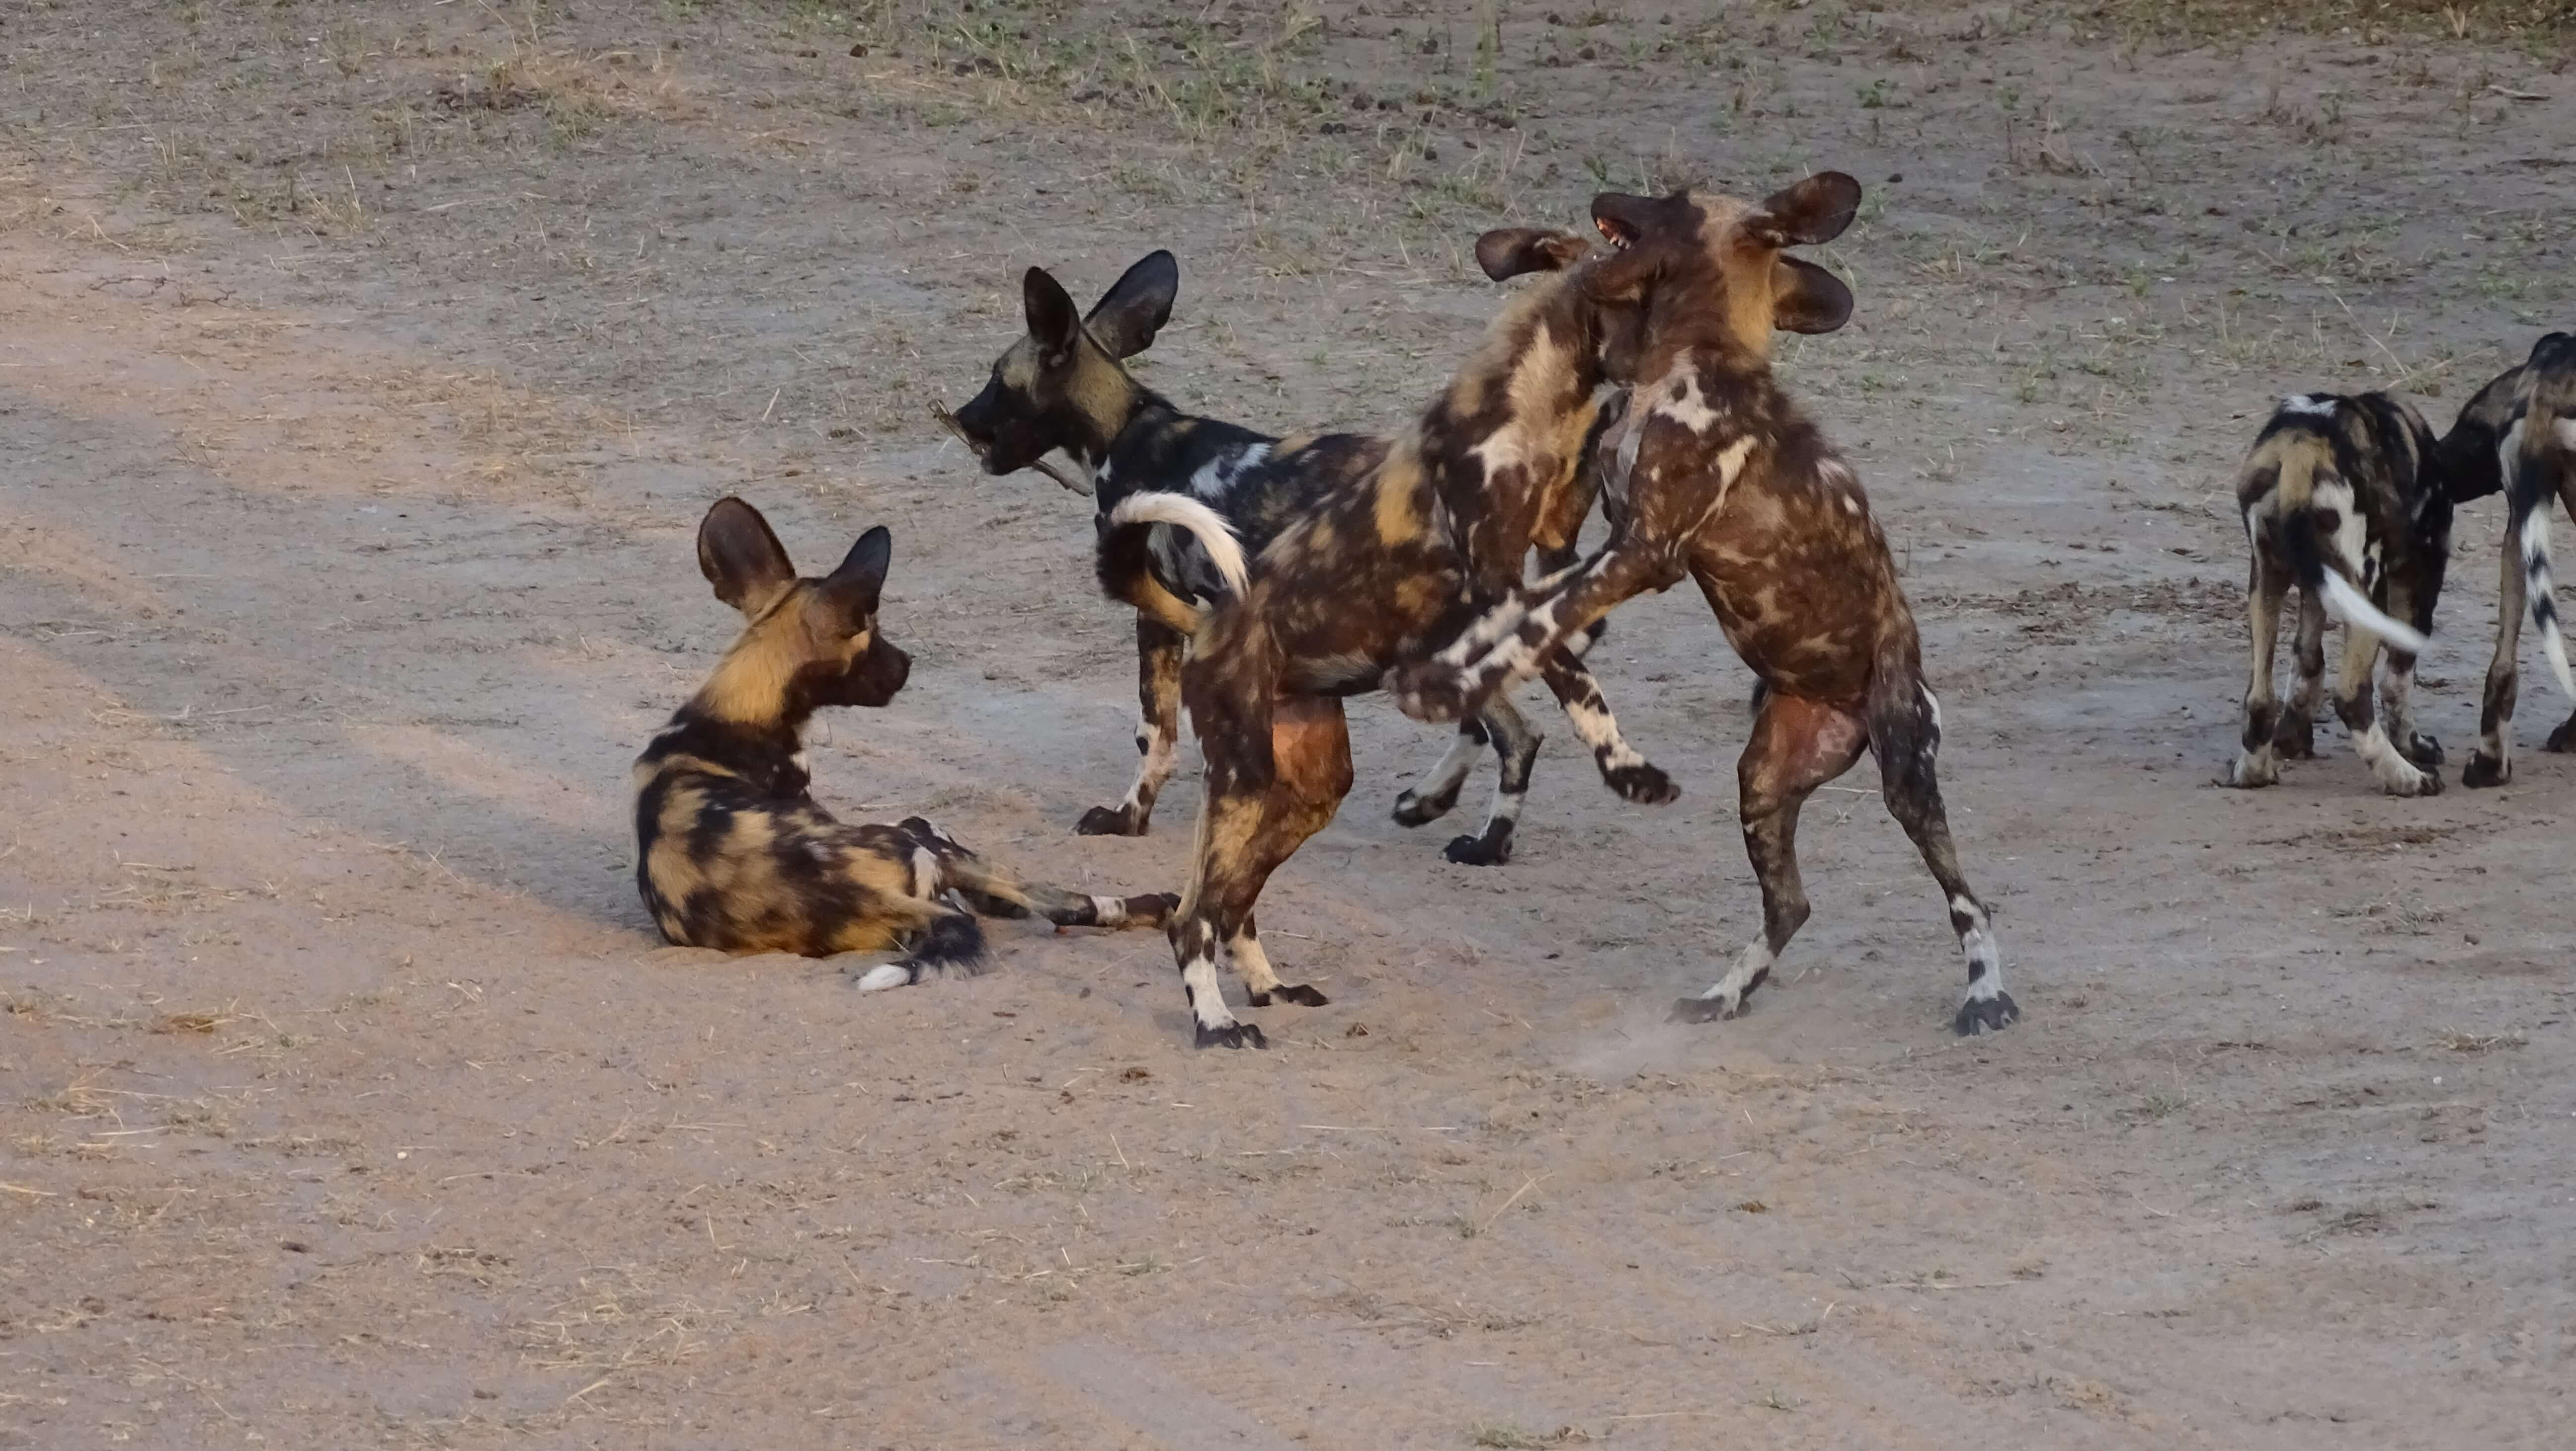 Afrikaanse wilde honden in Selous Game Reserve Tanzania